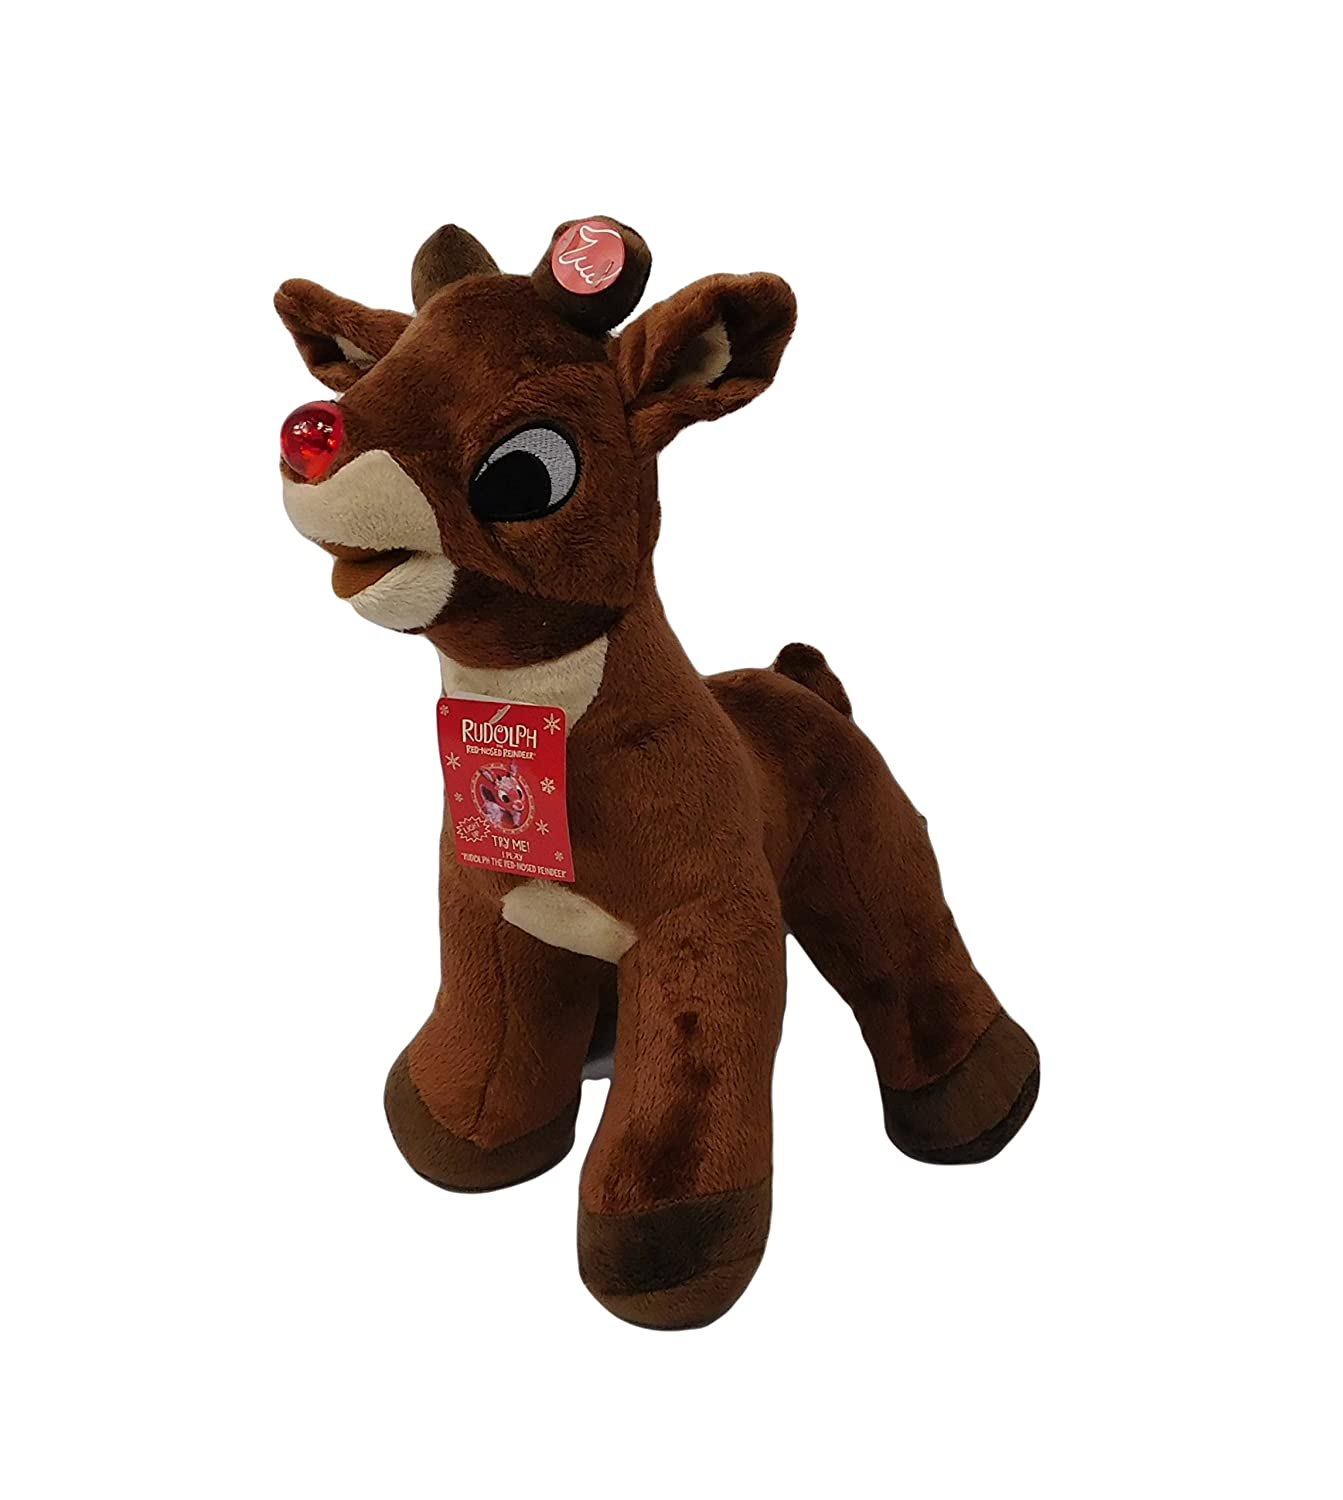 2013 Rudolph the ROT Xmas Nosed Reindeer 15 Singing & Light Up Nose Xmas ROT Plush Doll NWT by Dan Dee bb73a4